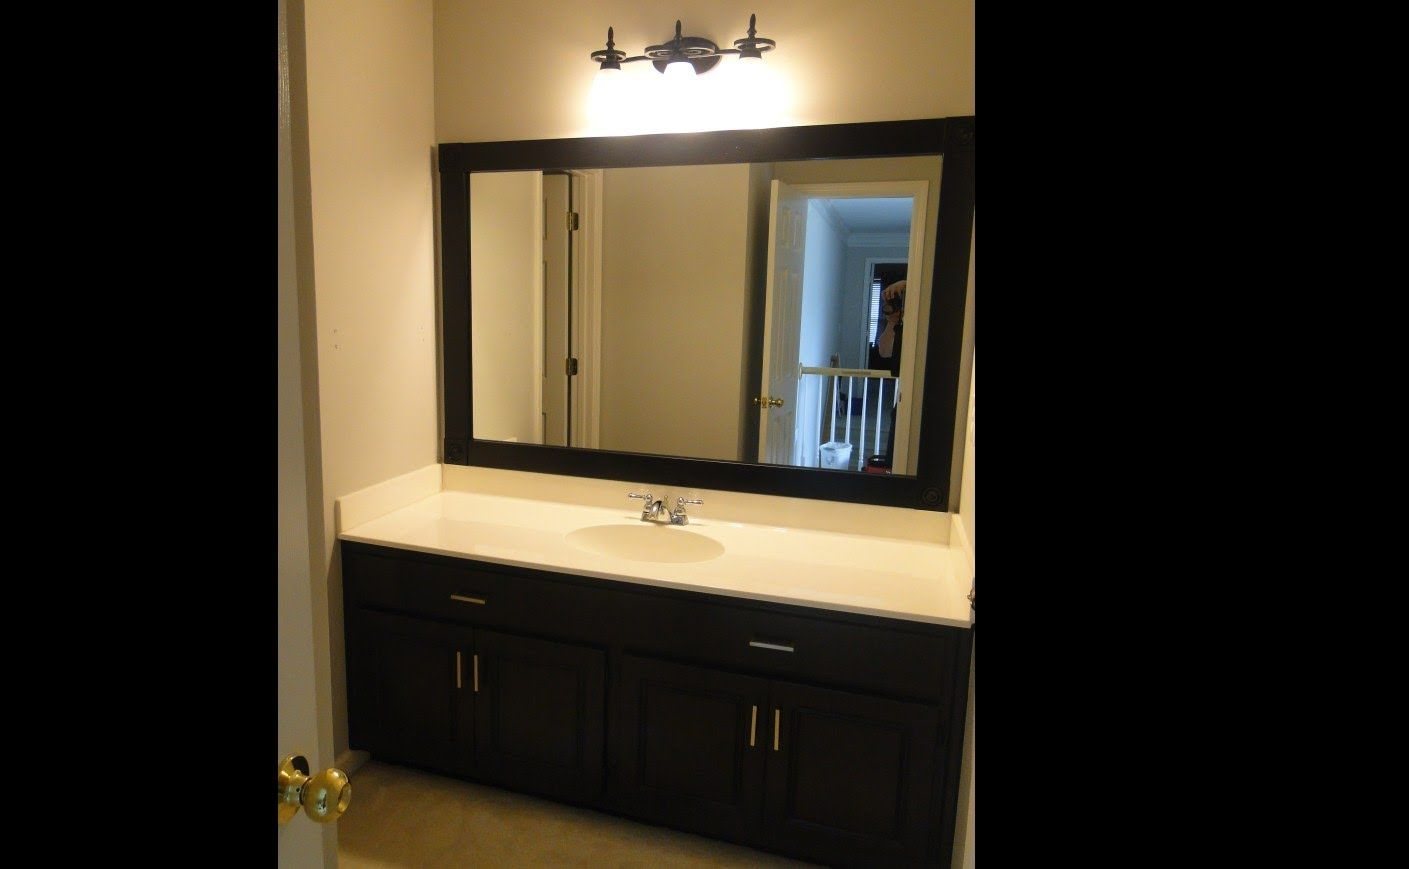 Bathroom Makeover Framing Mirror And Painting Cabinets Diy Pinterest Painting Cabinets